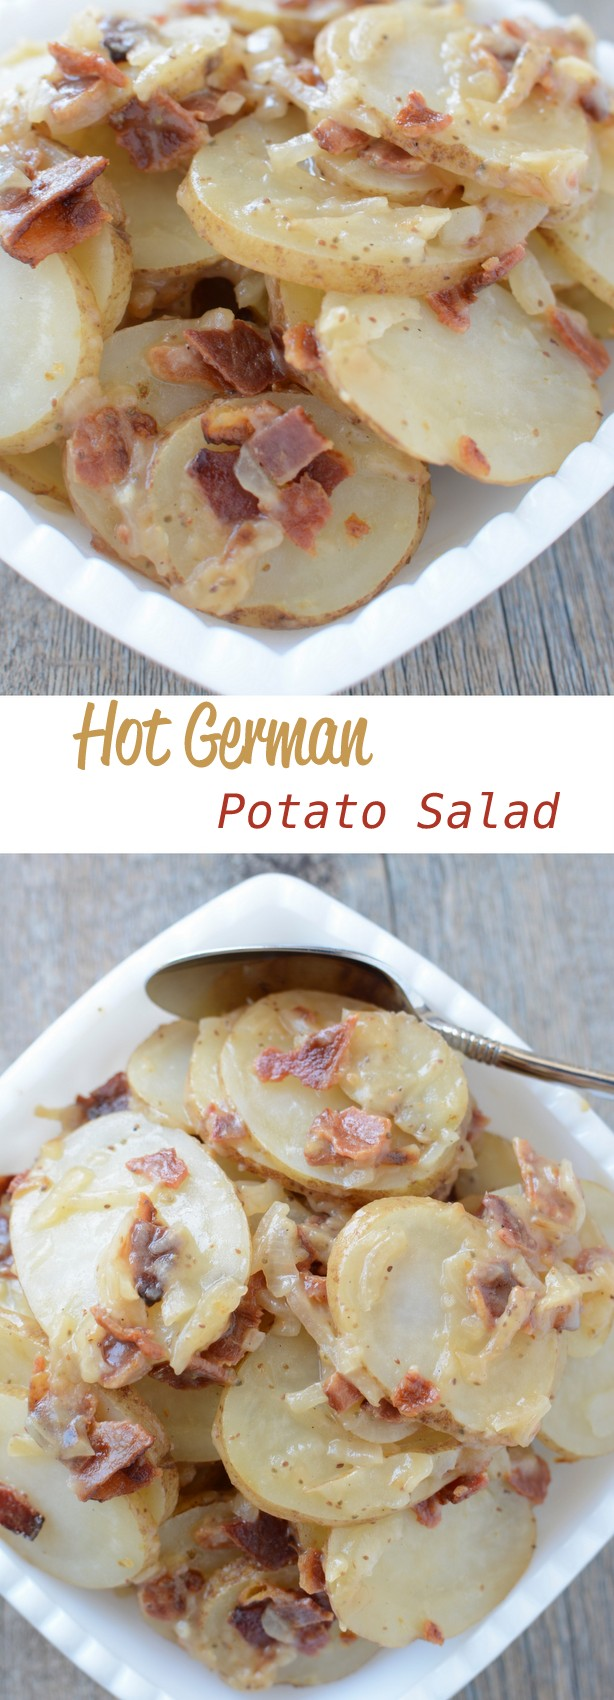 Hot German Potato salad a perfect potato salad that can be served warmed or chilled. #potato #bacon #potatosalad #hotgermanpotatosalad